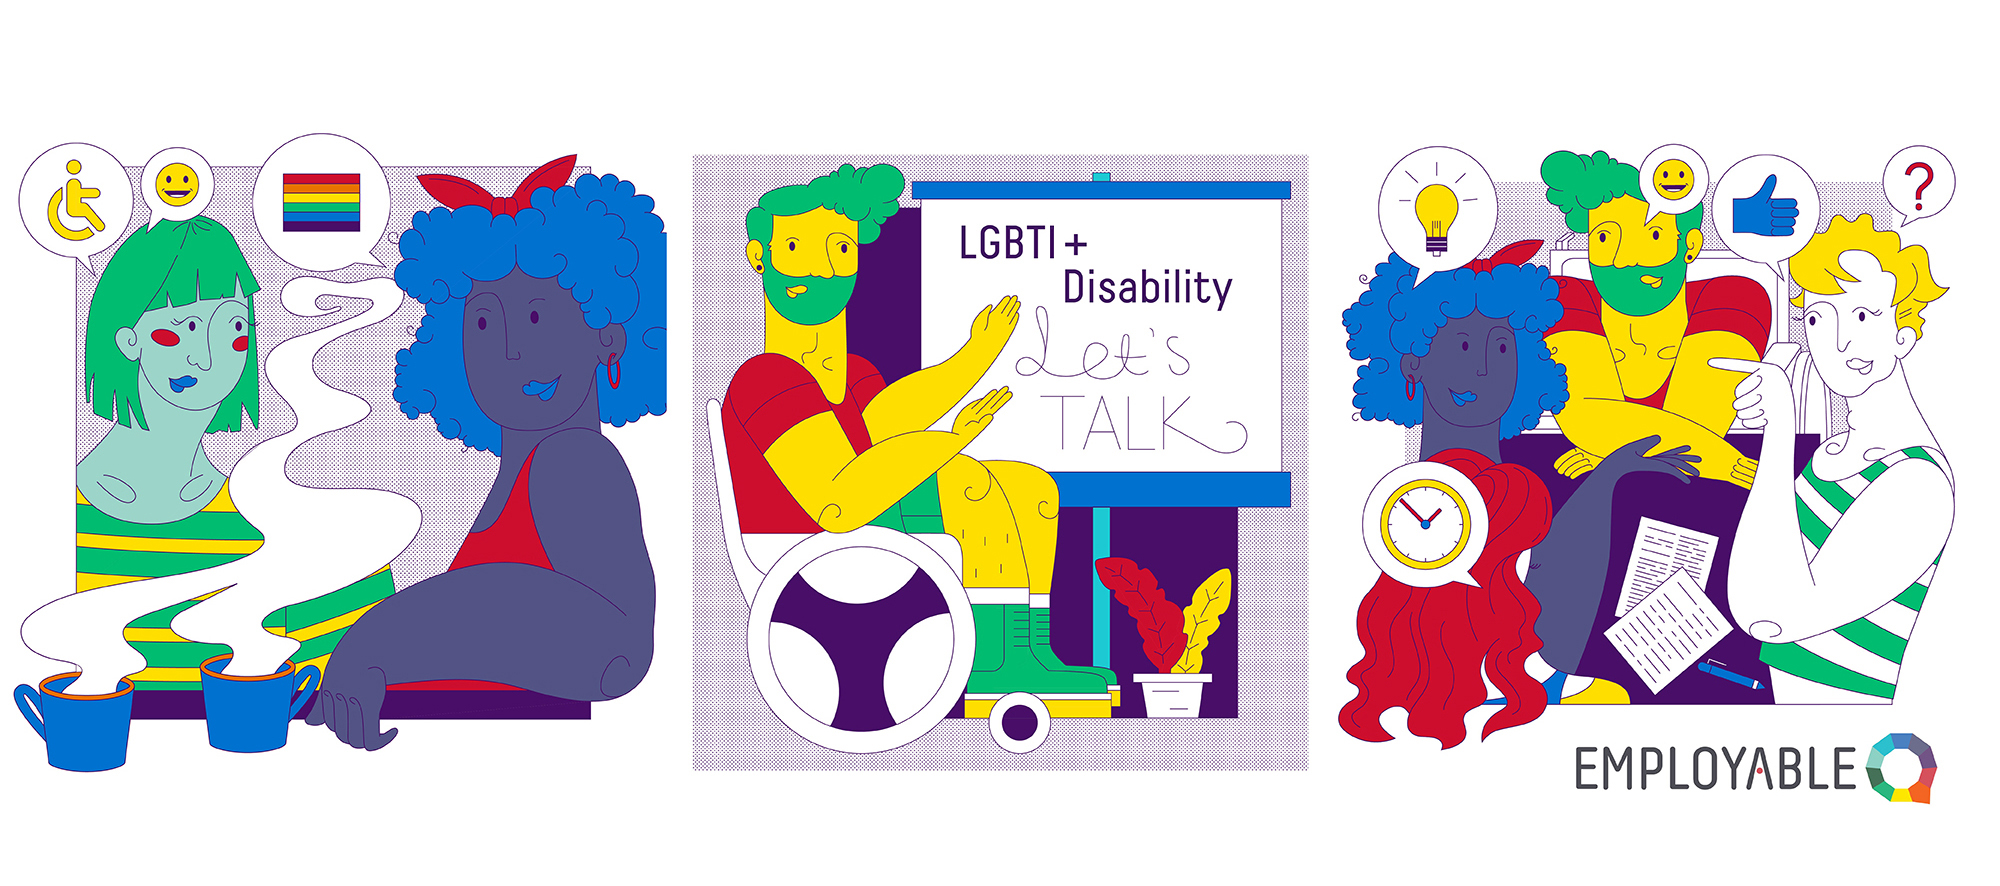 Banner image of illustrated characters in their inclusive workplaces